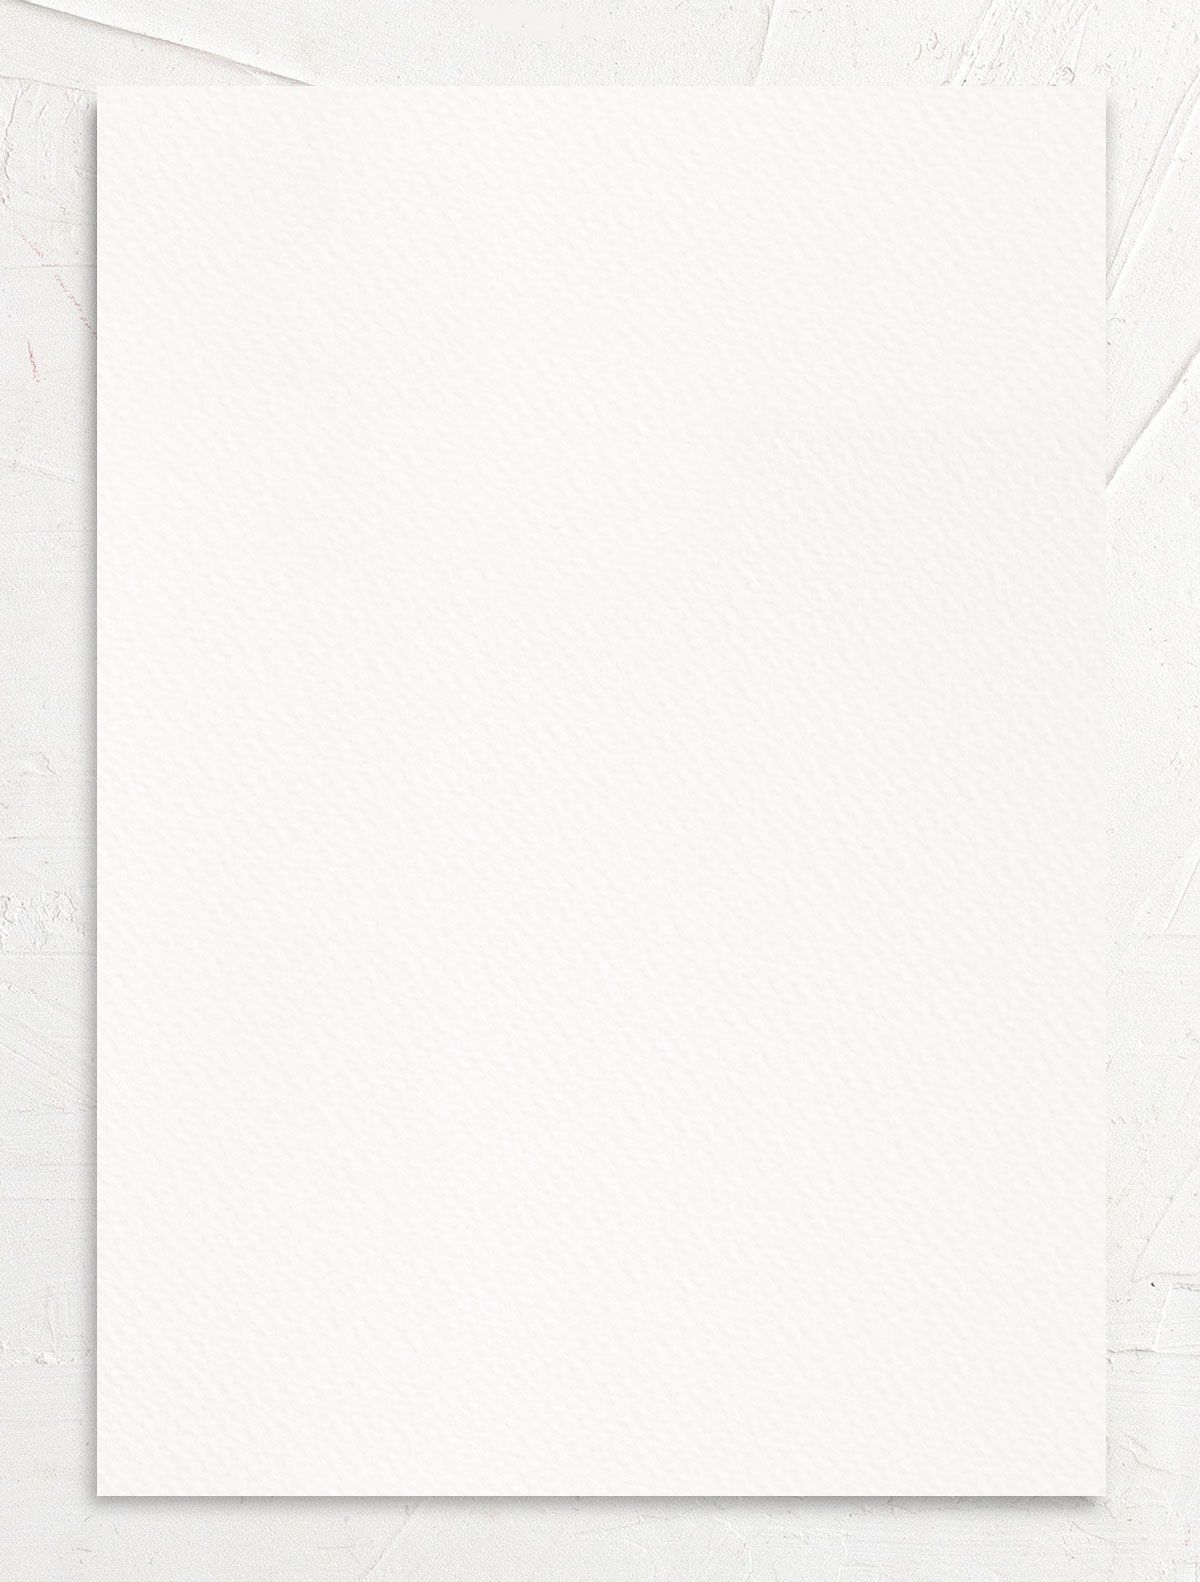 Exquisite Calligraphy Wedding Invitation back in white